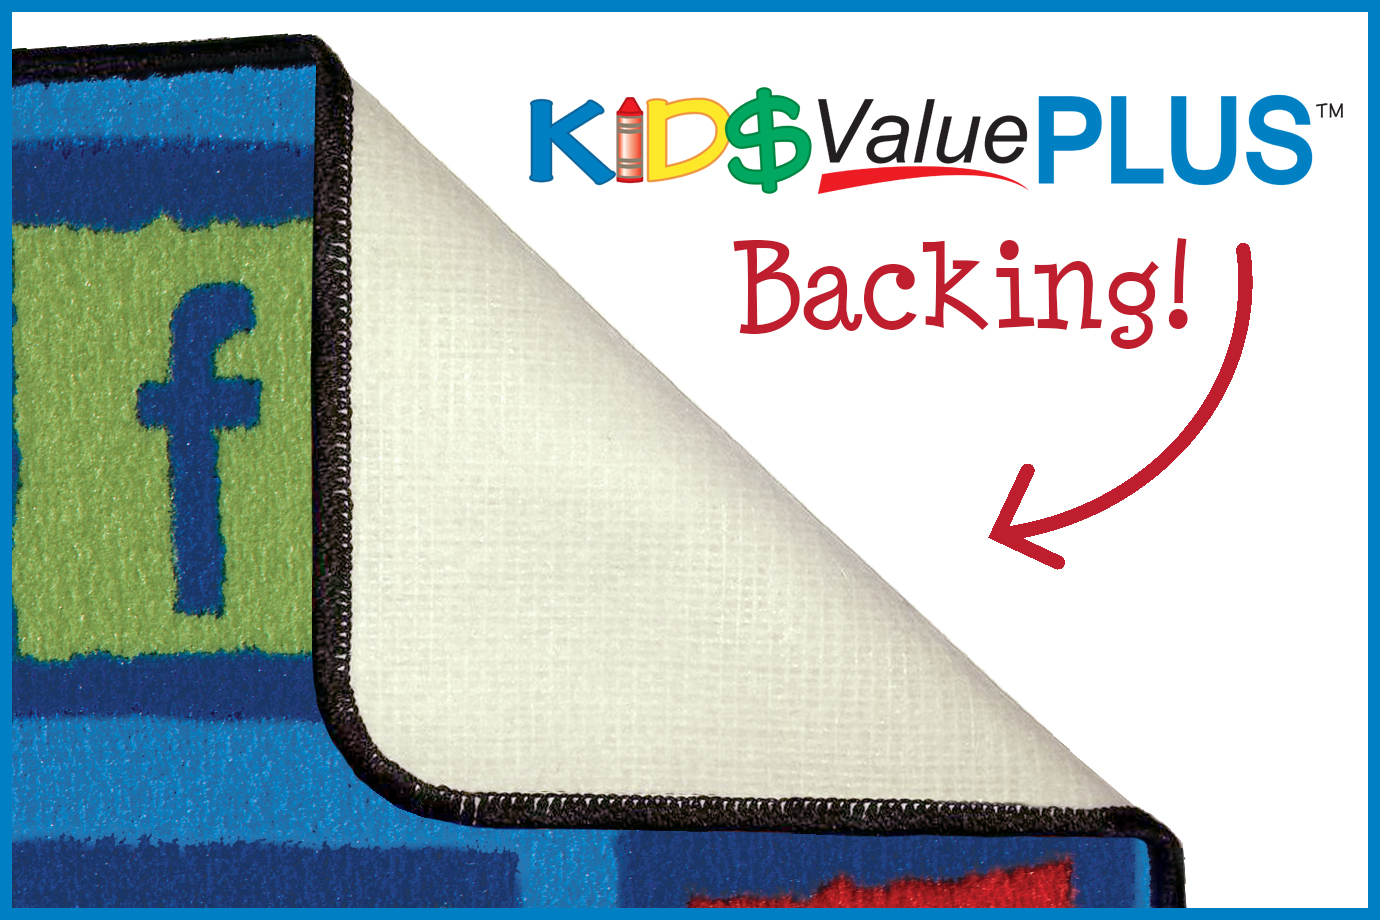 the kidply classroom rug backing wrinkling and creasing